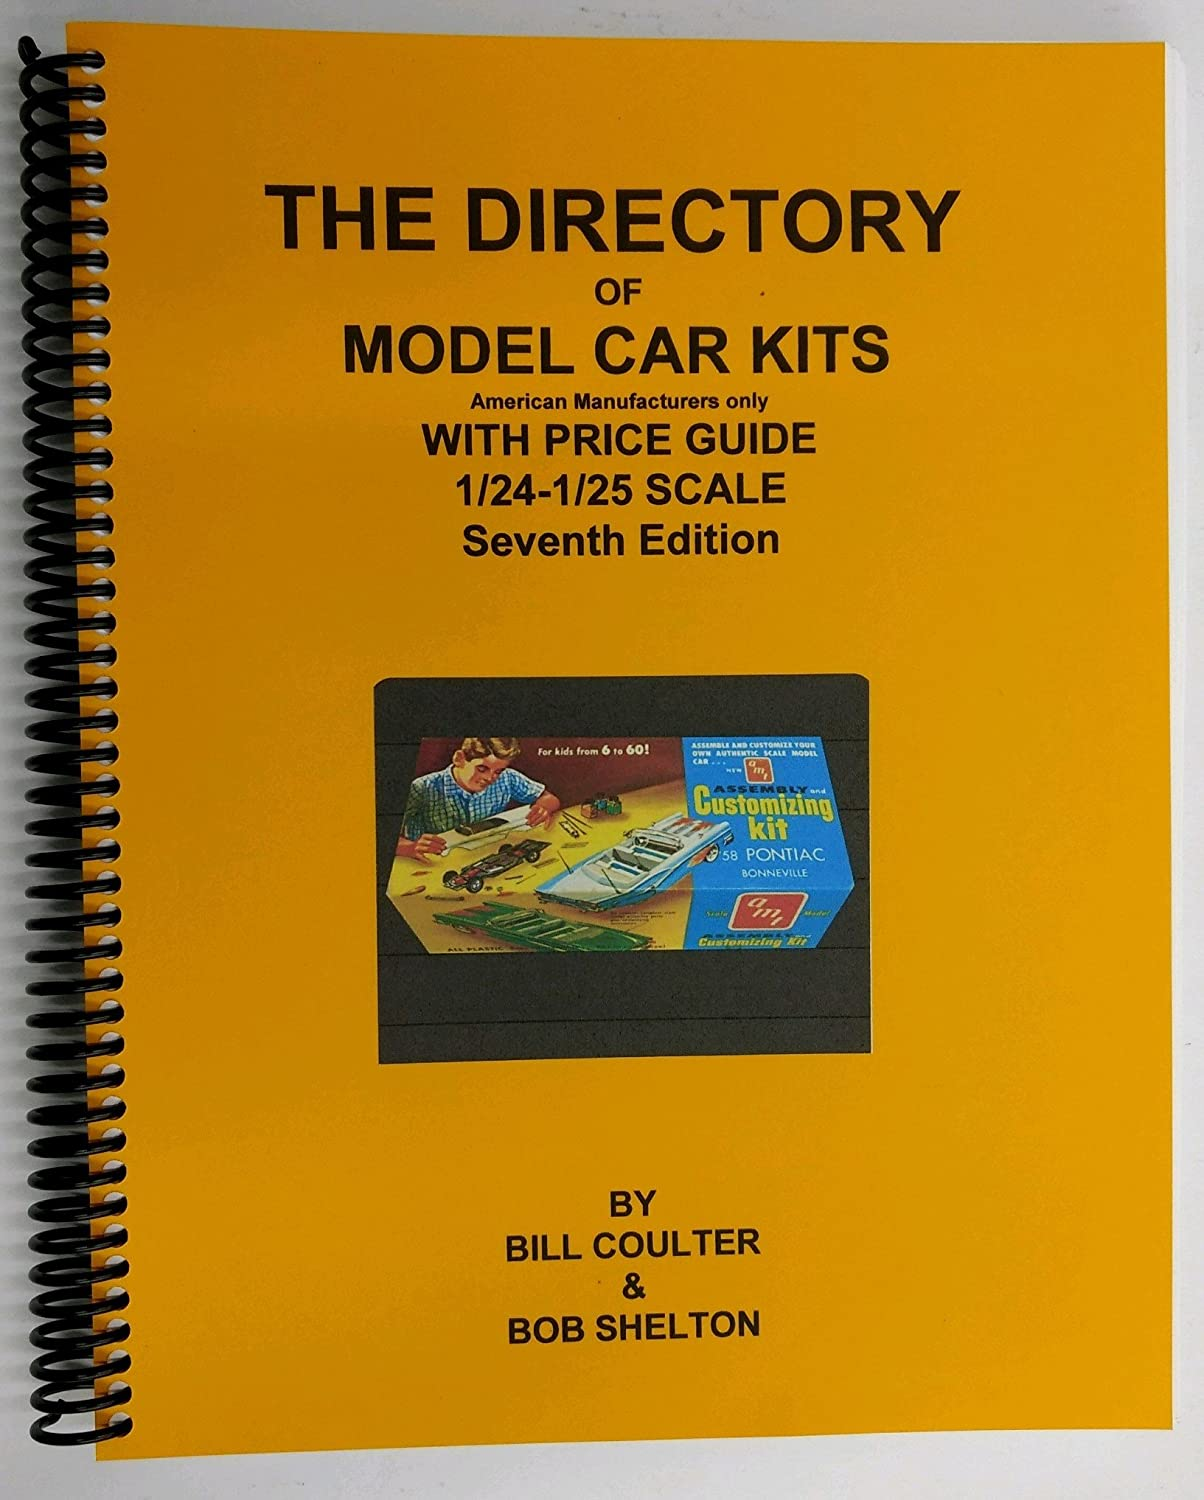 Amazon.com : The Directory of Model Car Kits 1/24-1/25 Scale ...